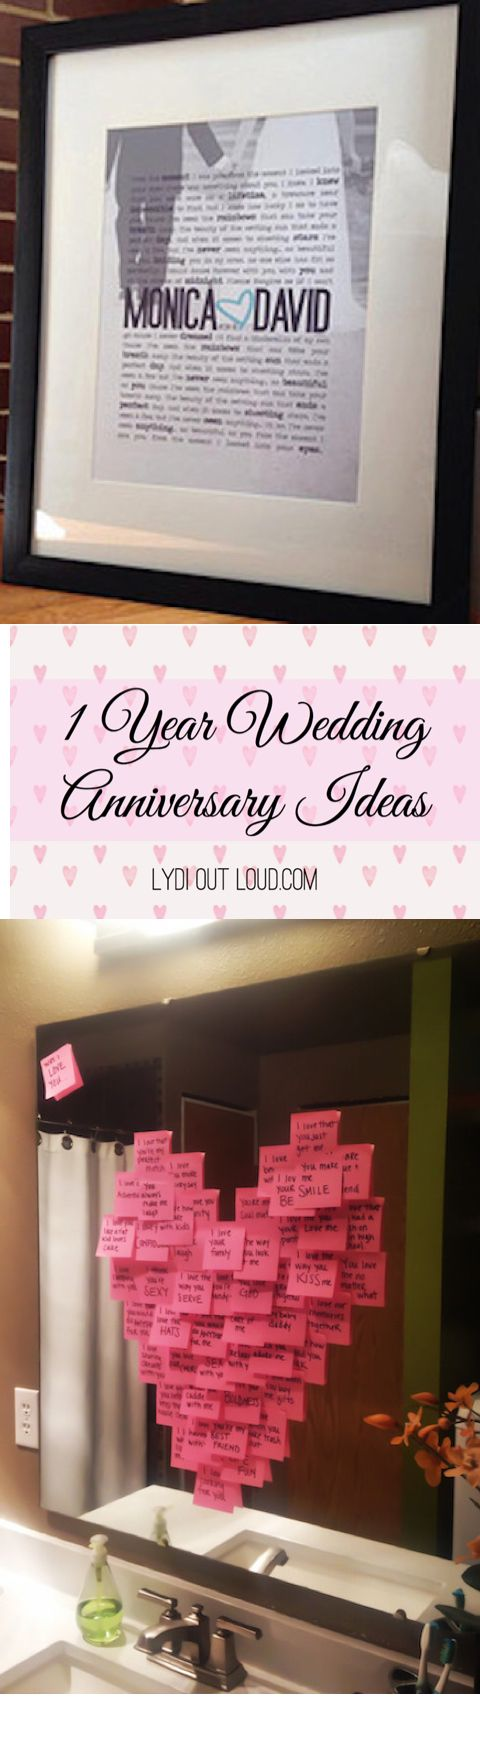 One Year Anniversary Ideas For Her : ... Anniversaries, 1st Year Anniversary and One Year Anniversary